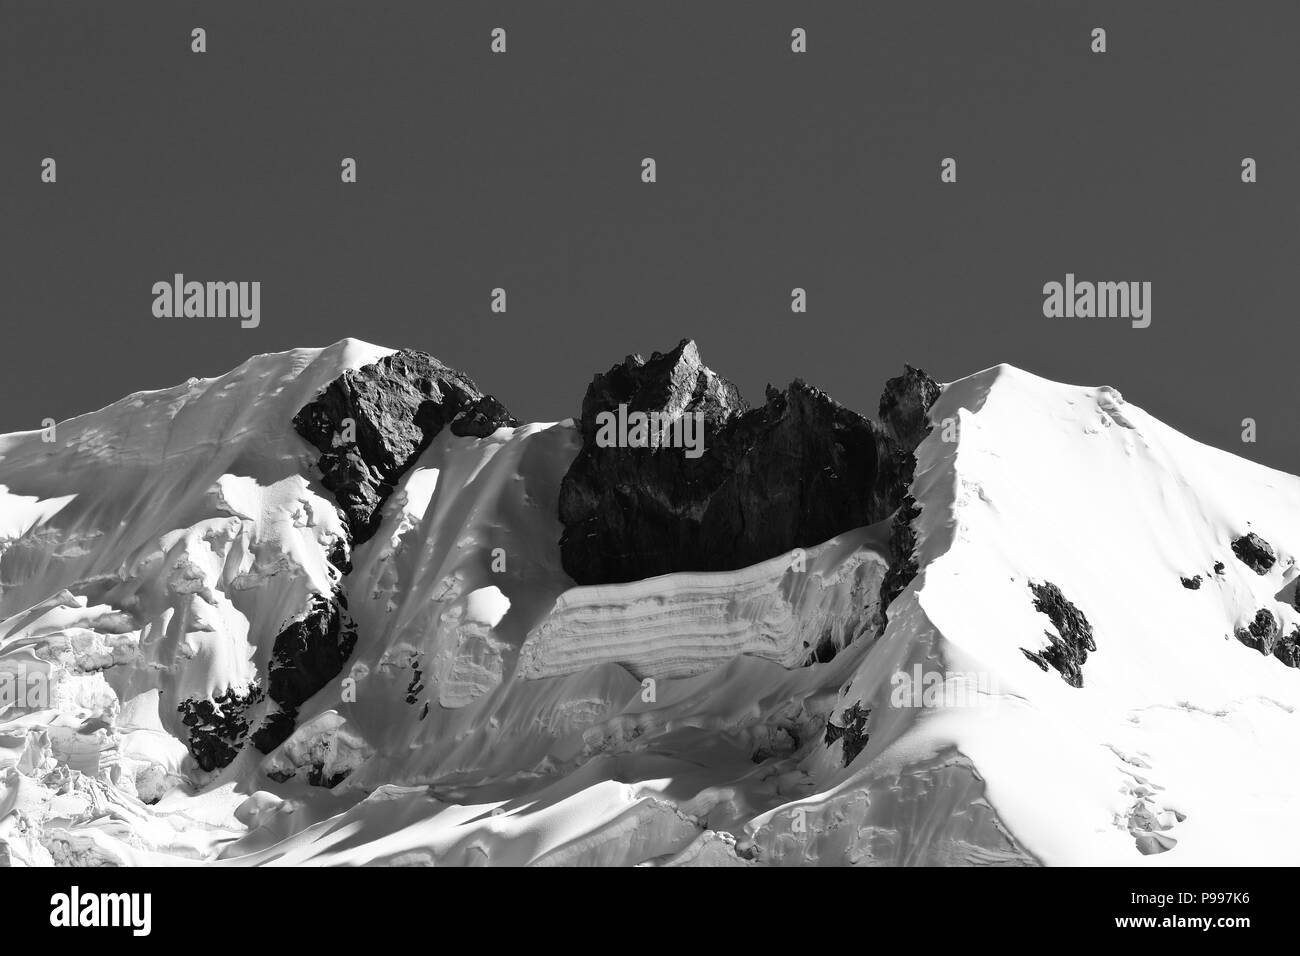 Detail of snowy huaytapallana - Stock Image